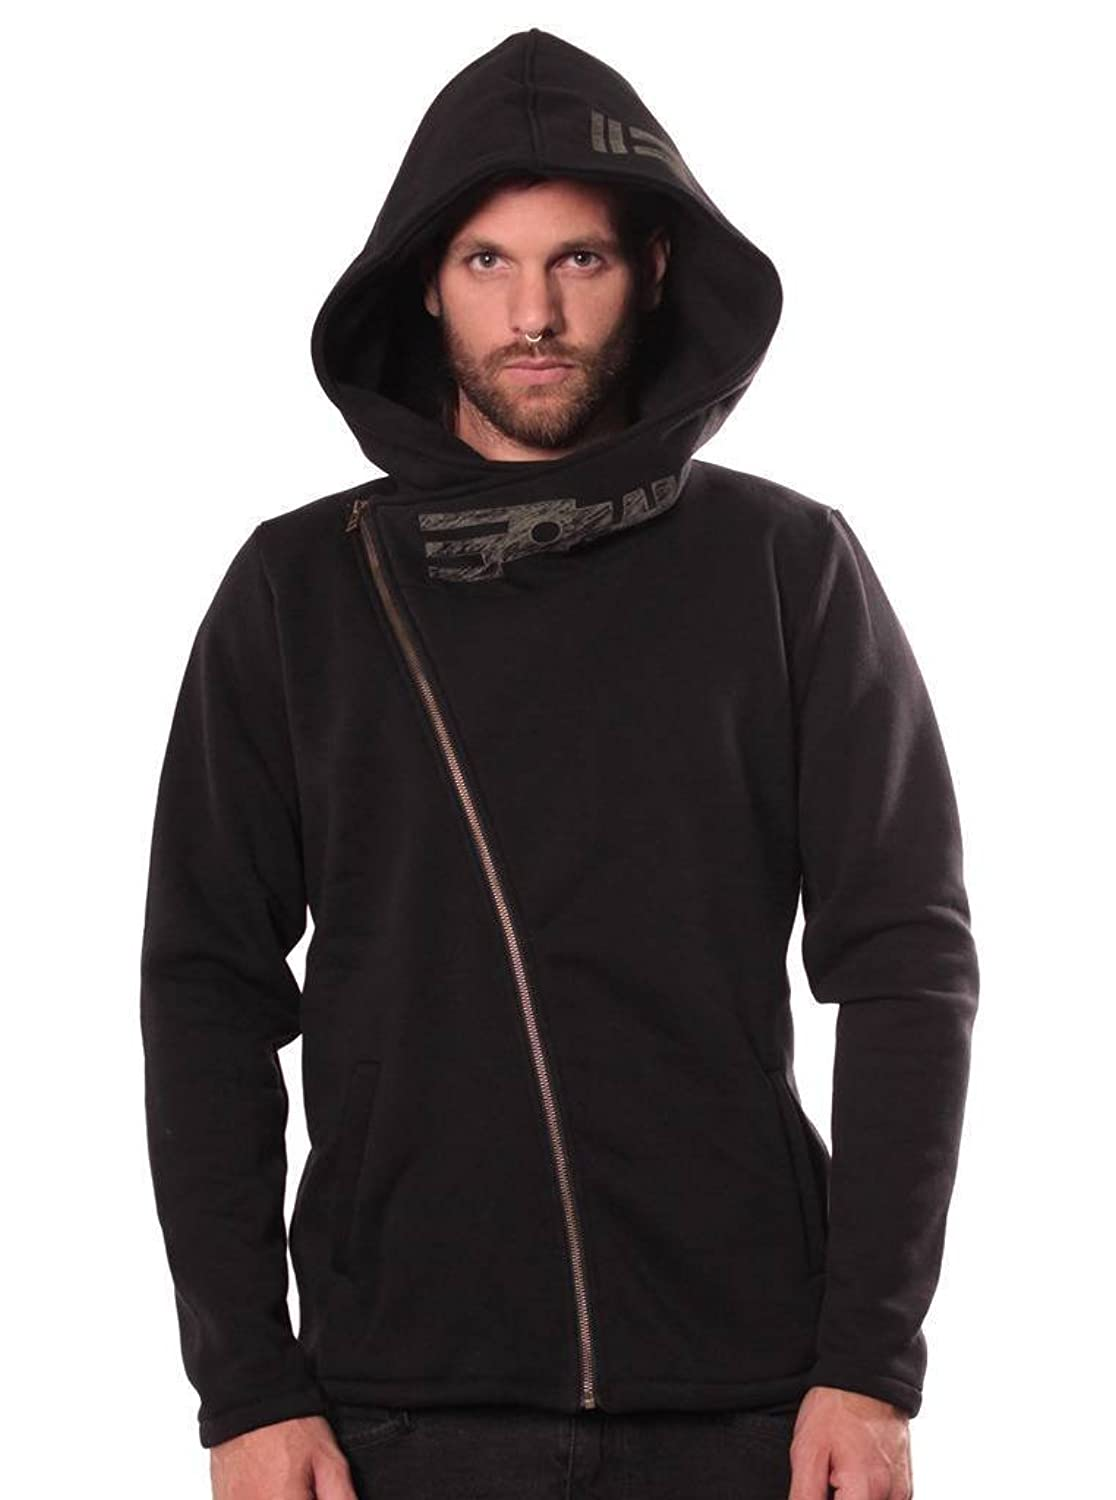 71f1c1bf6 This unique urban clothing artistic printed tribal hoodie with diagonal  zipper and oversized hood is made of 80% cotton and 20% poly.